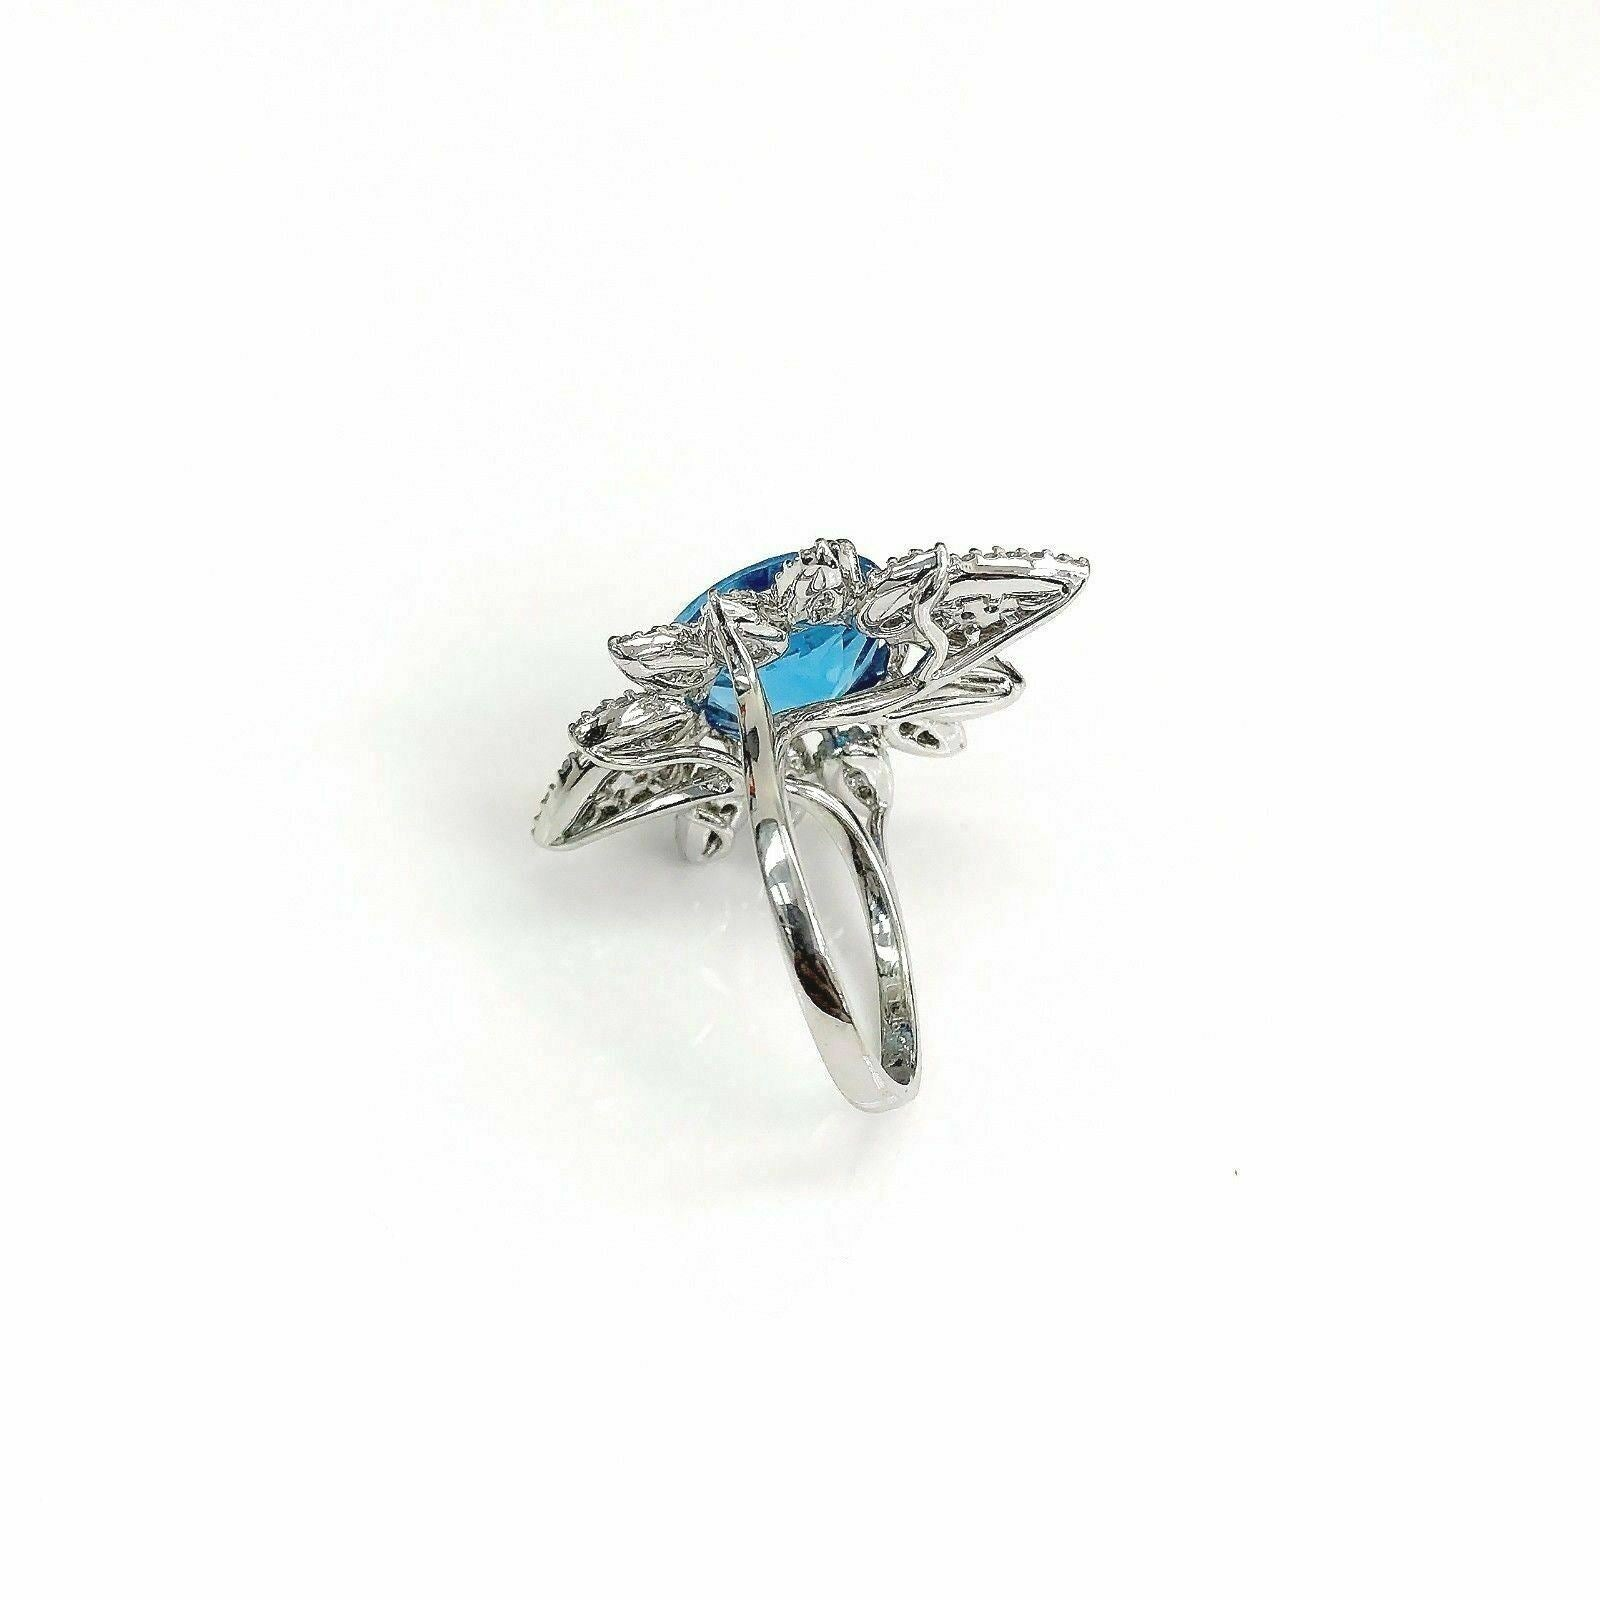 11.42 Carats tw Diamond and Blue Topaz Celebration Ring Topaz is 10 Carats 18K